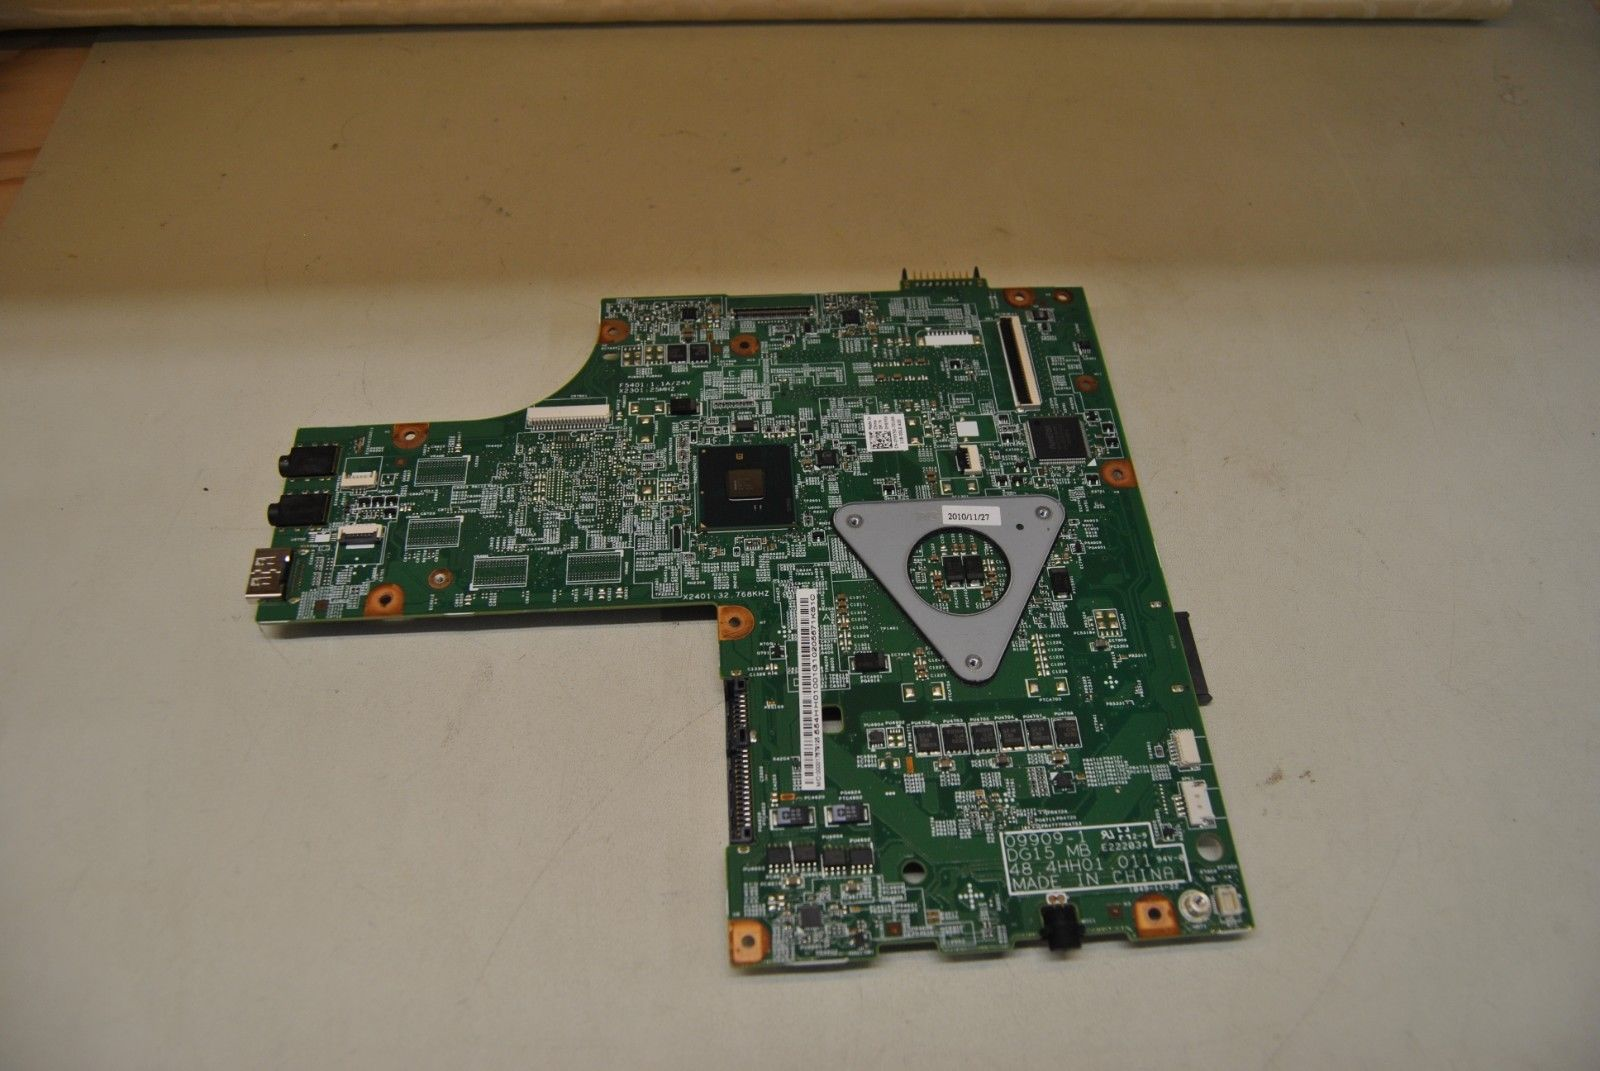 Laptop Motherboard For Dell Insprion N5010 CN-0Y6Y56 Y6Y56 HM57 PGA989 09909-1 48.4HH01.011 DDR3 Fully TestedLaptop Motherboard For Dell Insprion N5010 CN-0Y6Y56 Y6Y56 HM57 PGA989 09909-1 48.4HH01.011 DDR3 Fully Tested